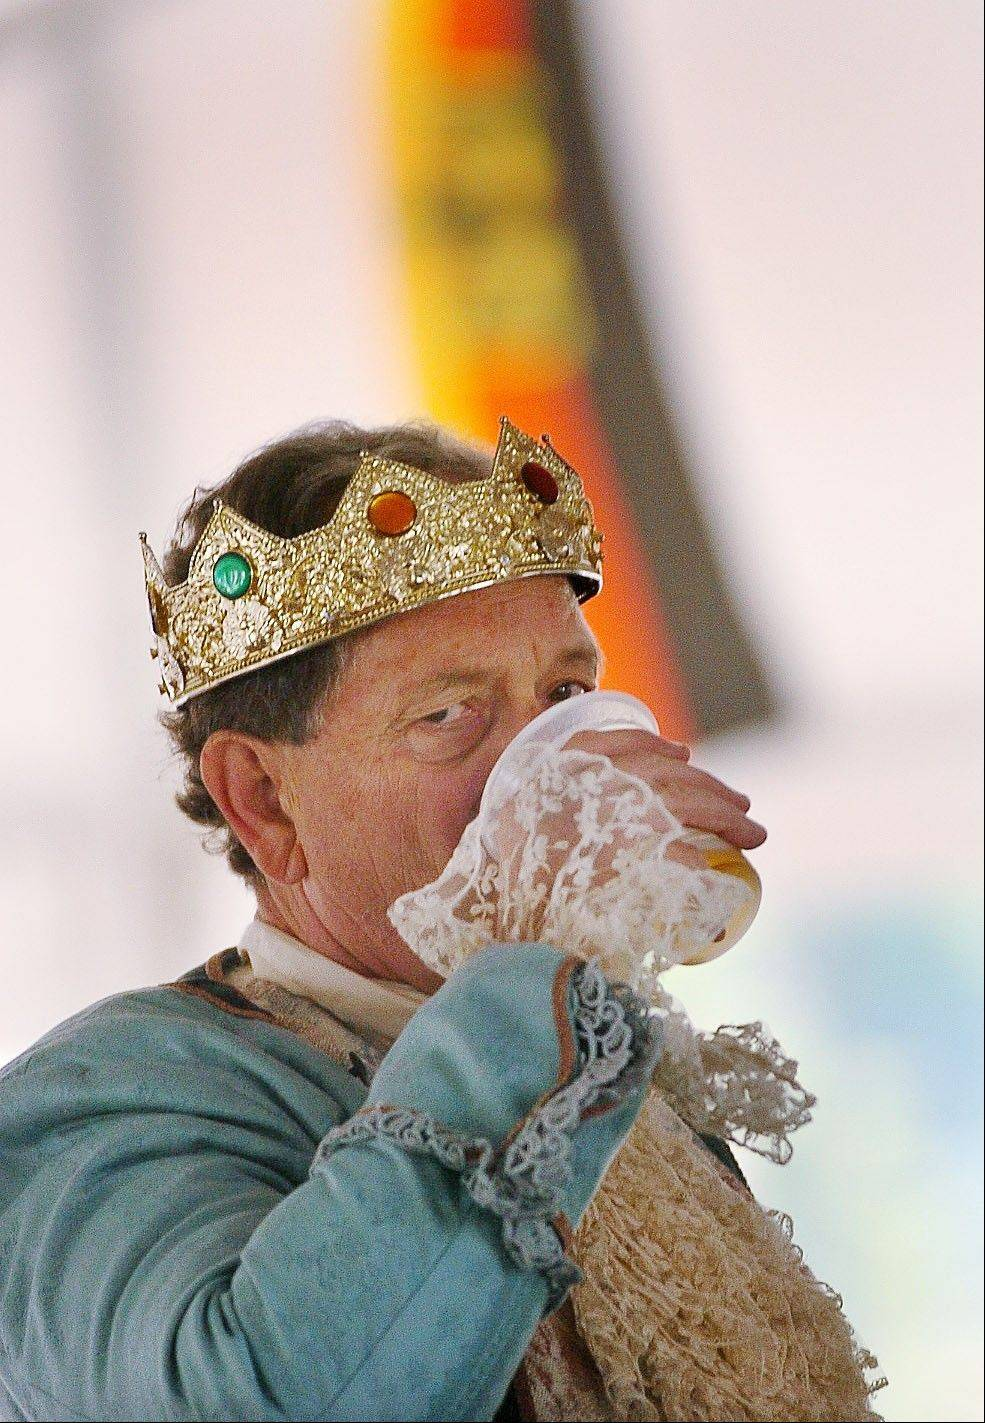 Jim McLin, the Grandfather King of the 2010 Oktoberfest, hoists a beer in front of a German flag.